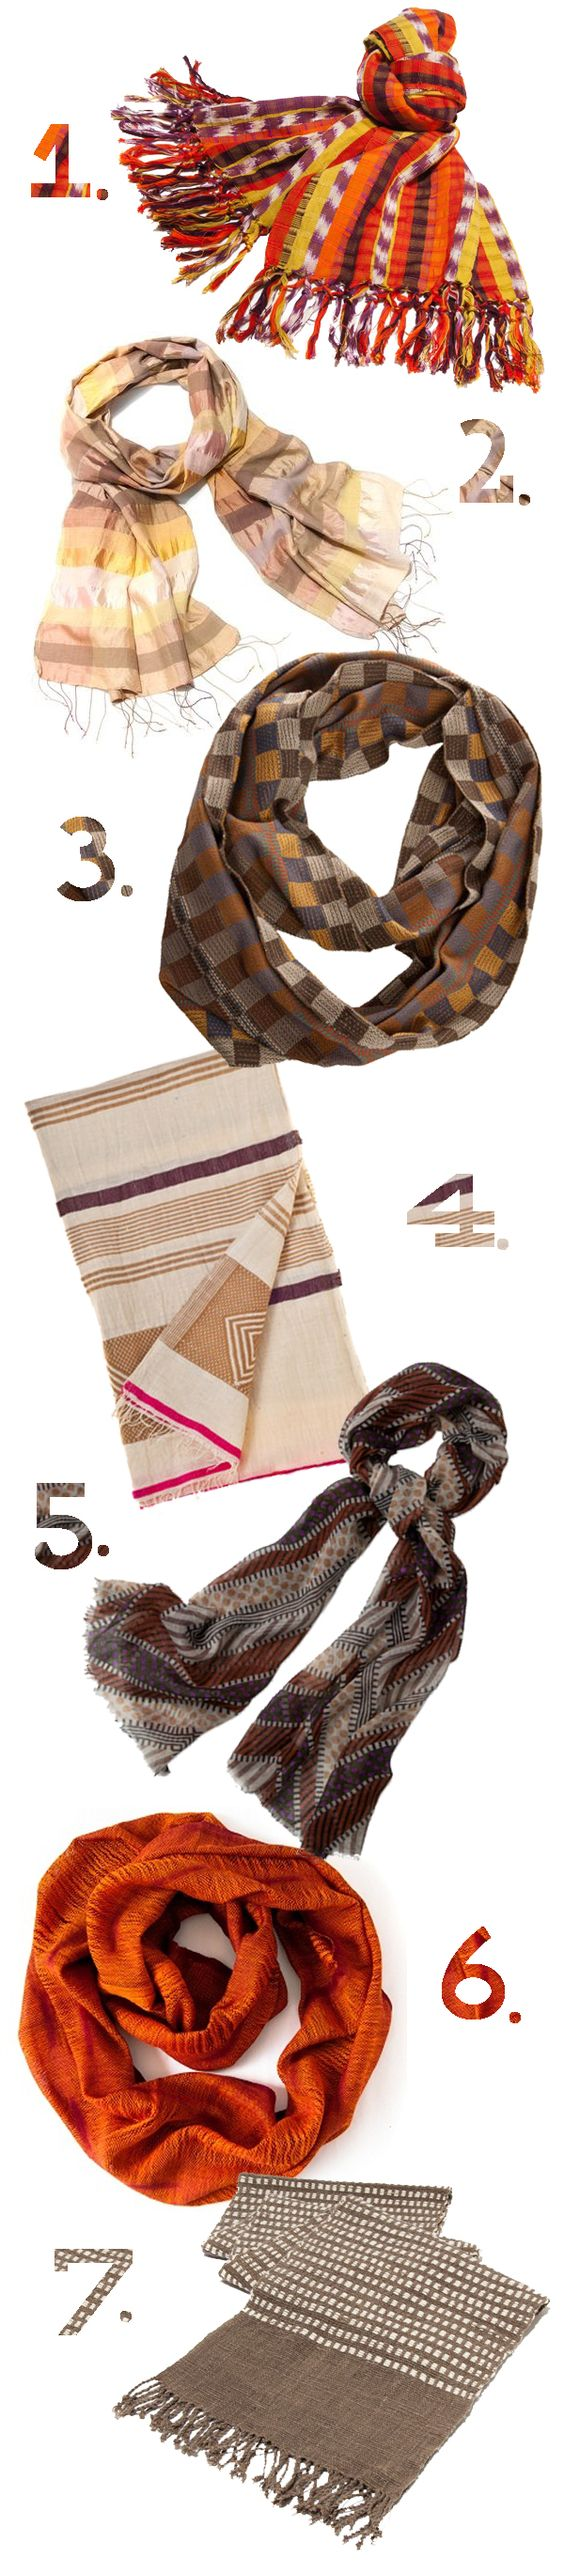 Fair Trade Scarves for Fall.jpg